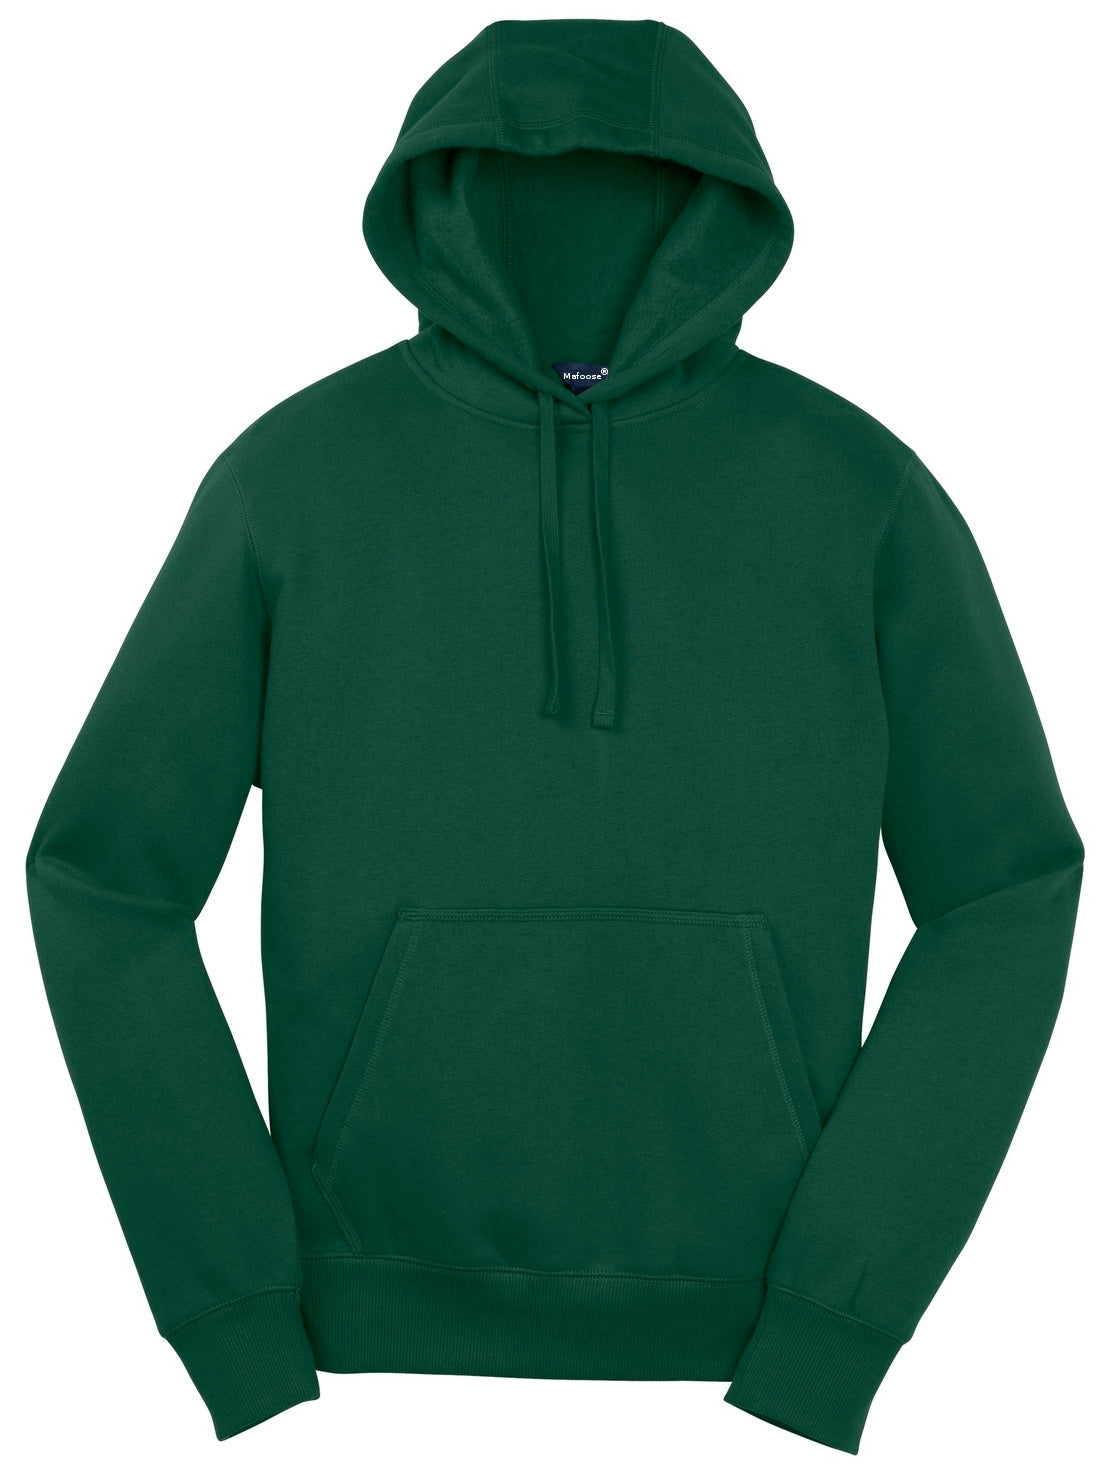 Men's Pullover Hooded Sweatshirt